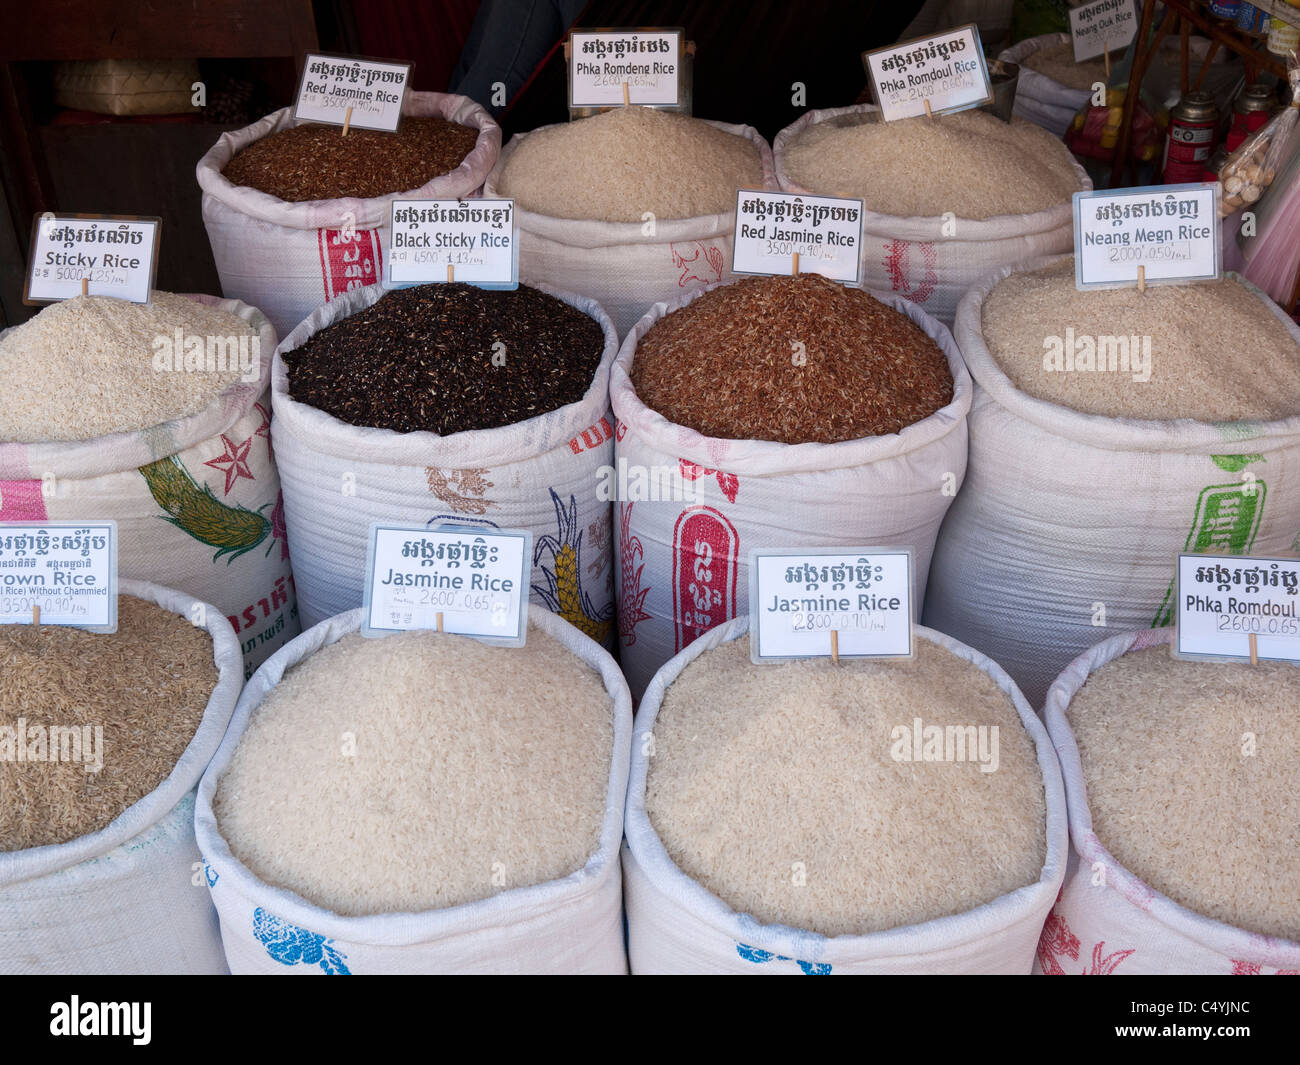 Sacks of red and white jasmine rice, and black and white sticky rice for sale at the Old Market, Siem Reap, Cambodia - Stock Image